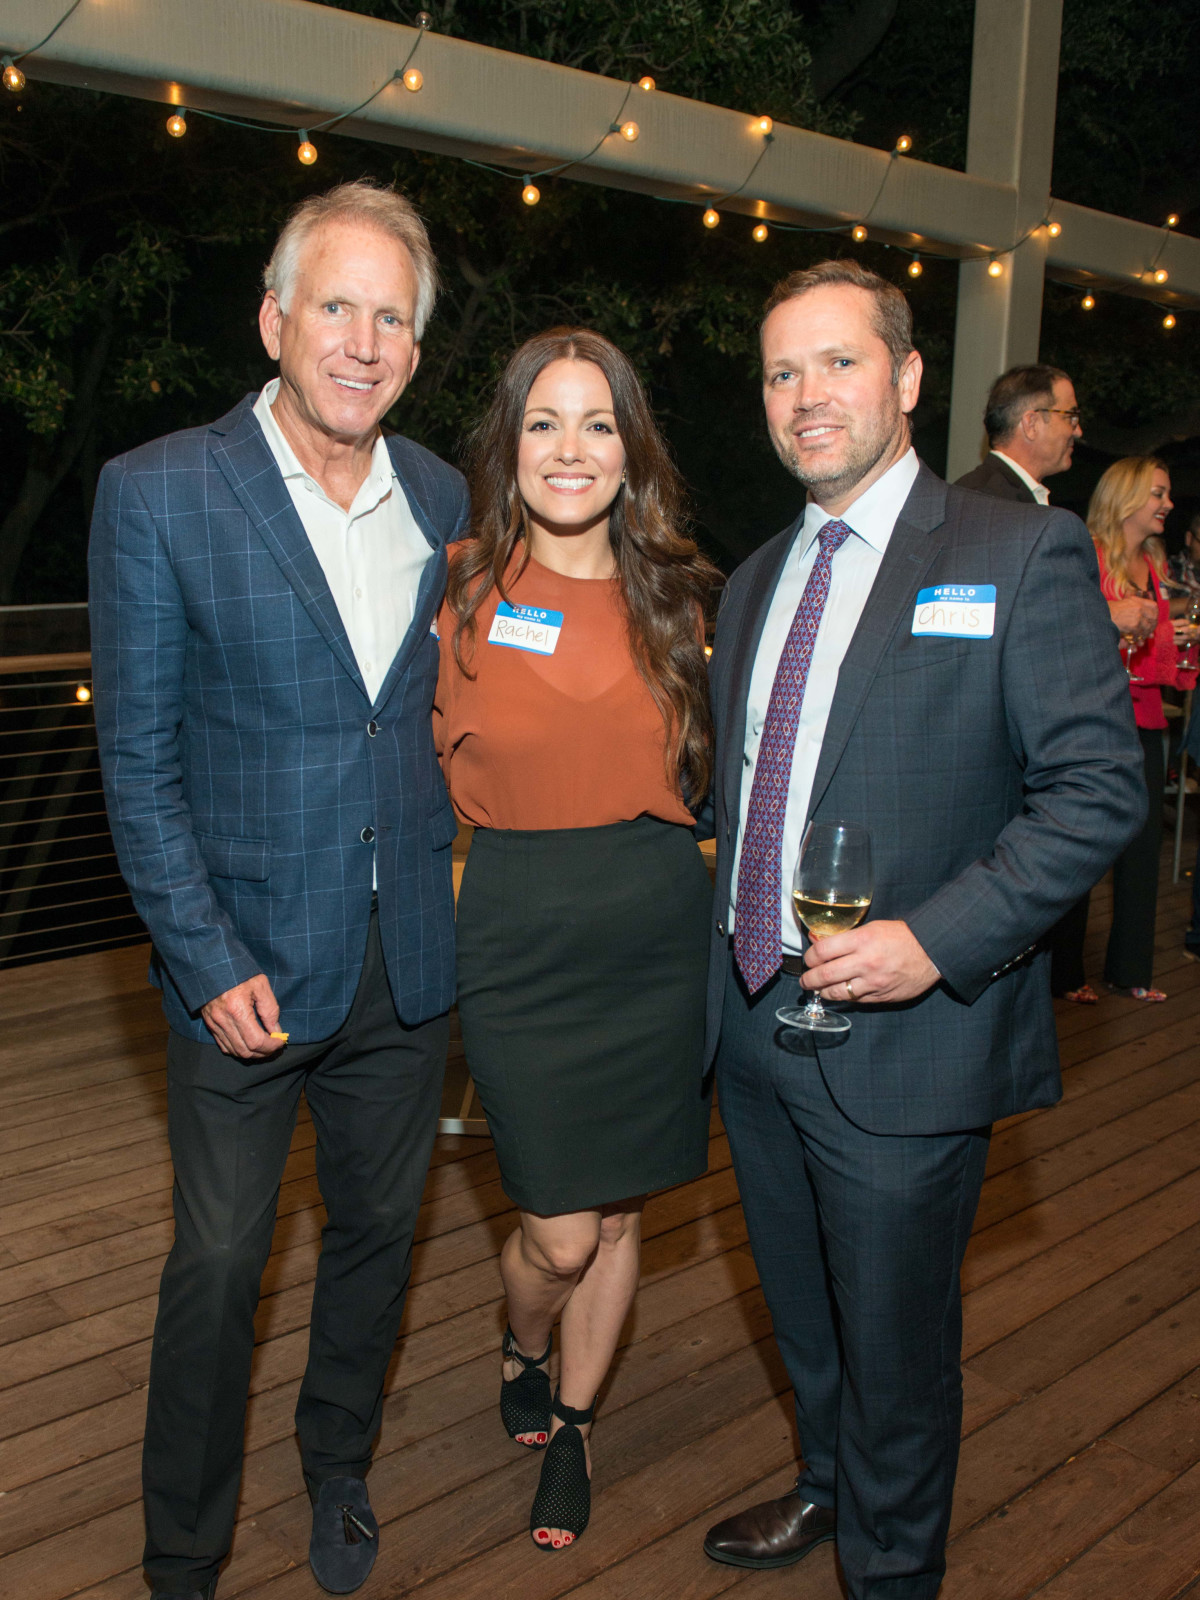 Automotive Map launch party 2019 Lonnie Schiller, Rachel Conrad, and Chris Dvorachek